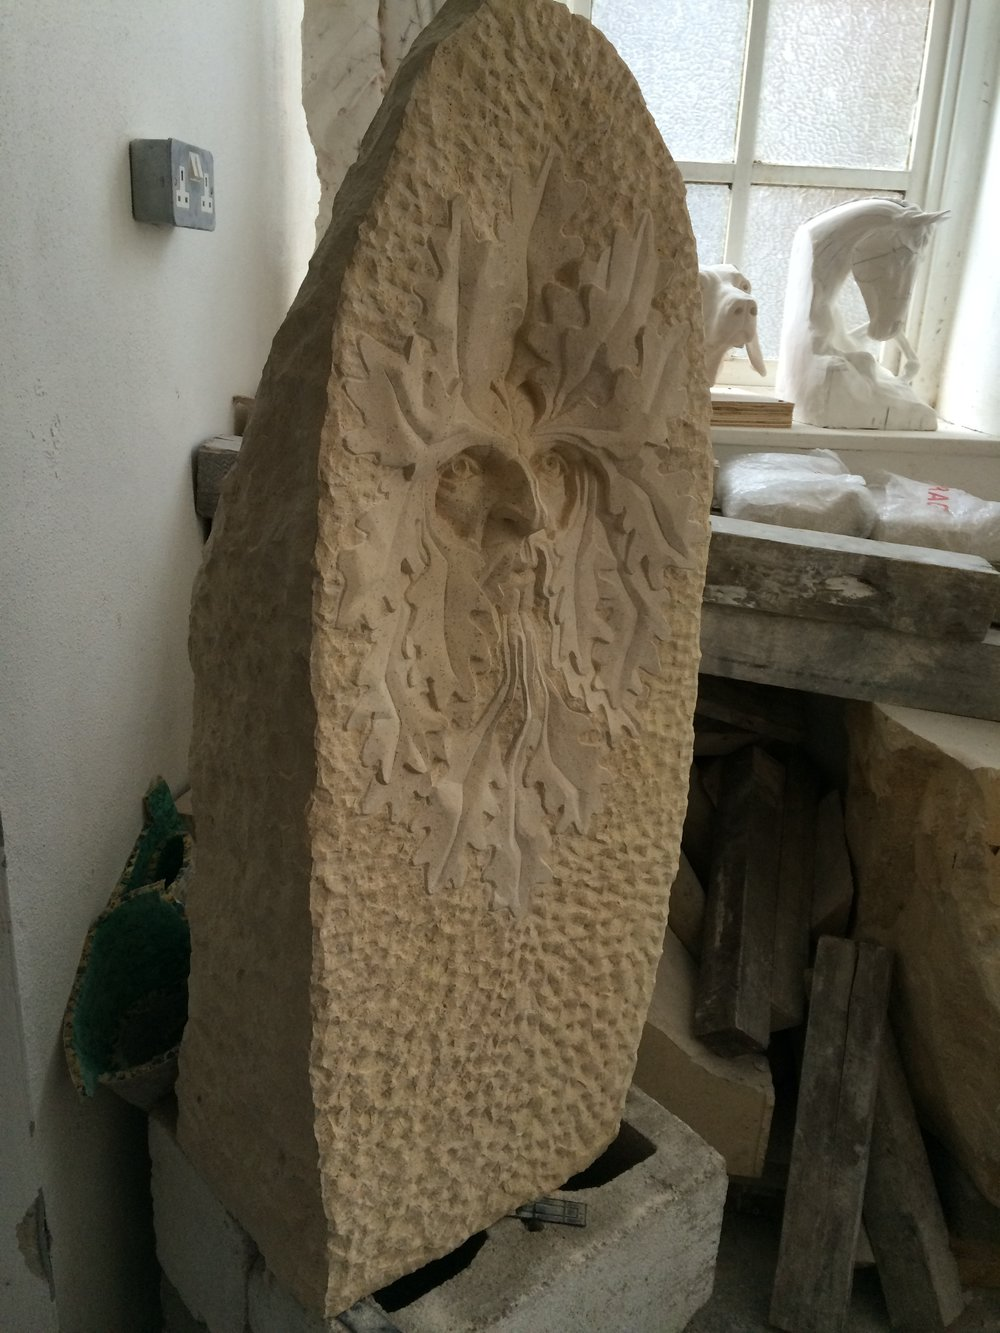 Green man in Tadcaster limestone